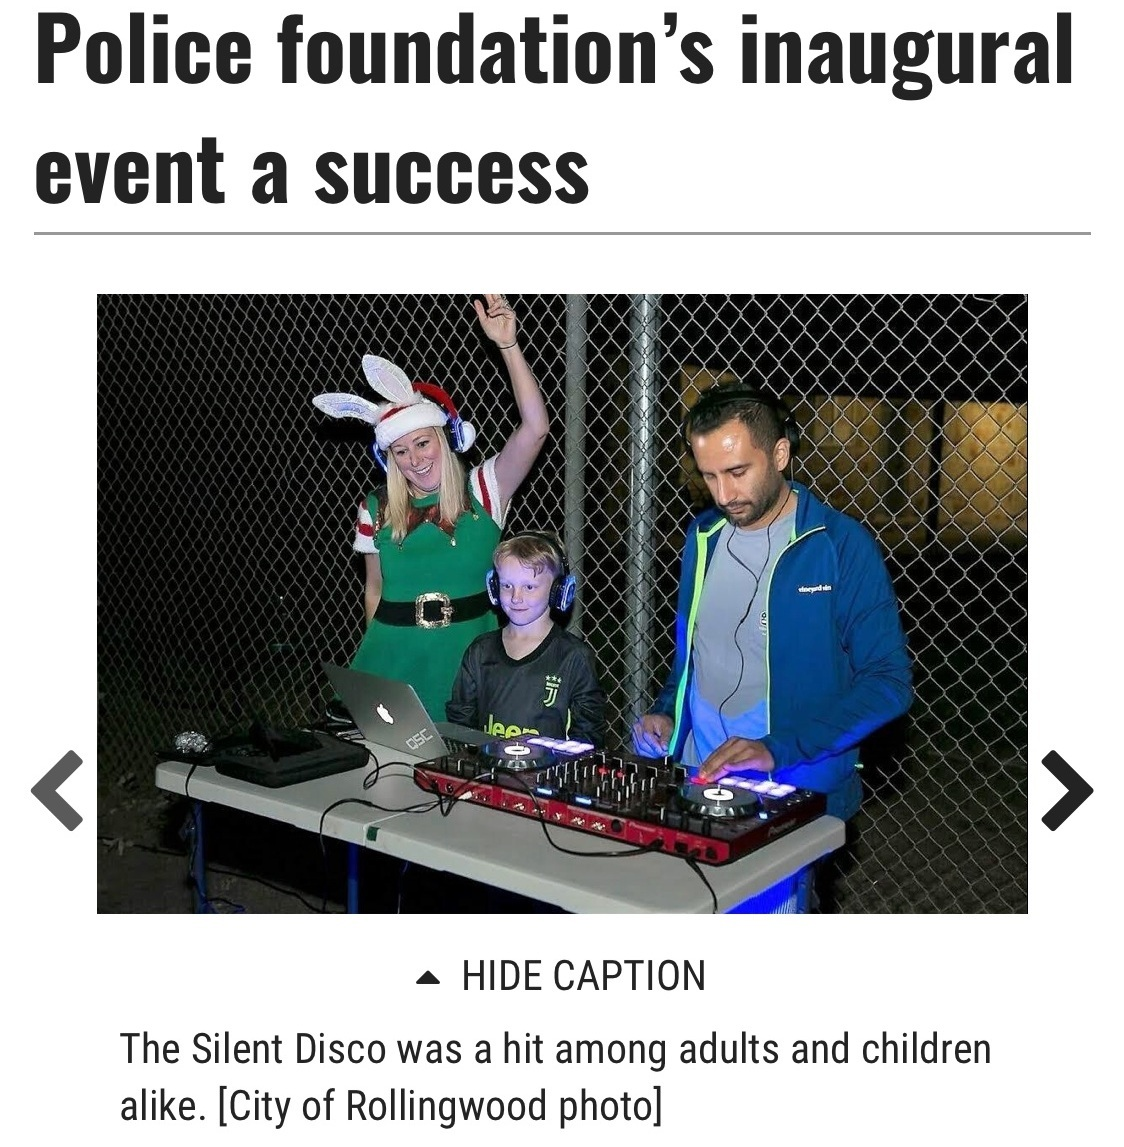 Austin Statesman Feature Dec 2018 - Jason Stella DJing Silent Disco for the City of Rollingwood Police Inaugural Fundraiser.